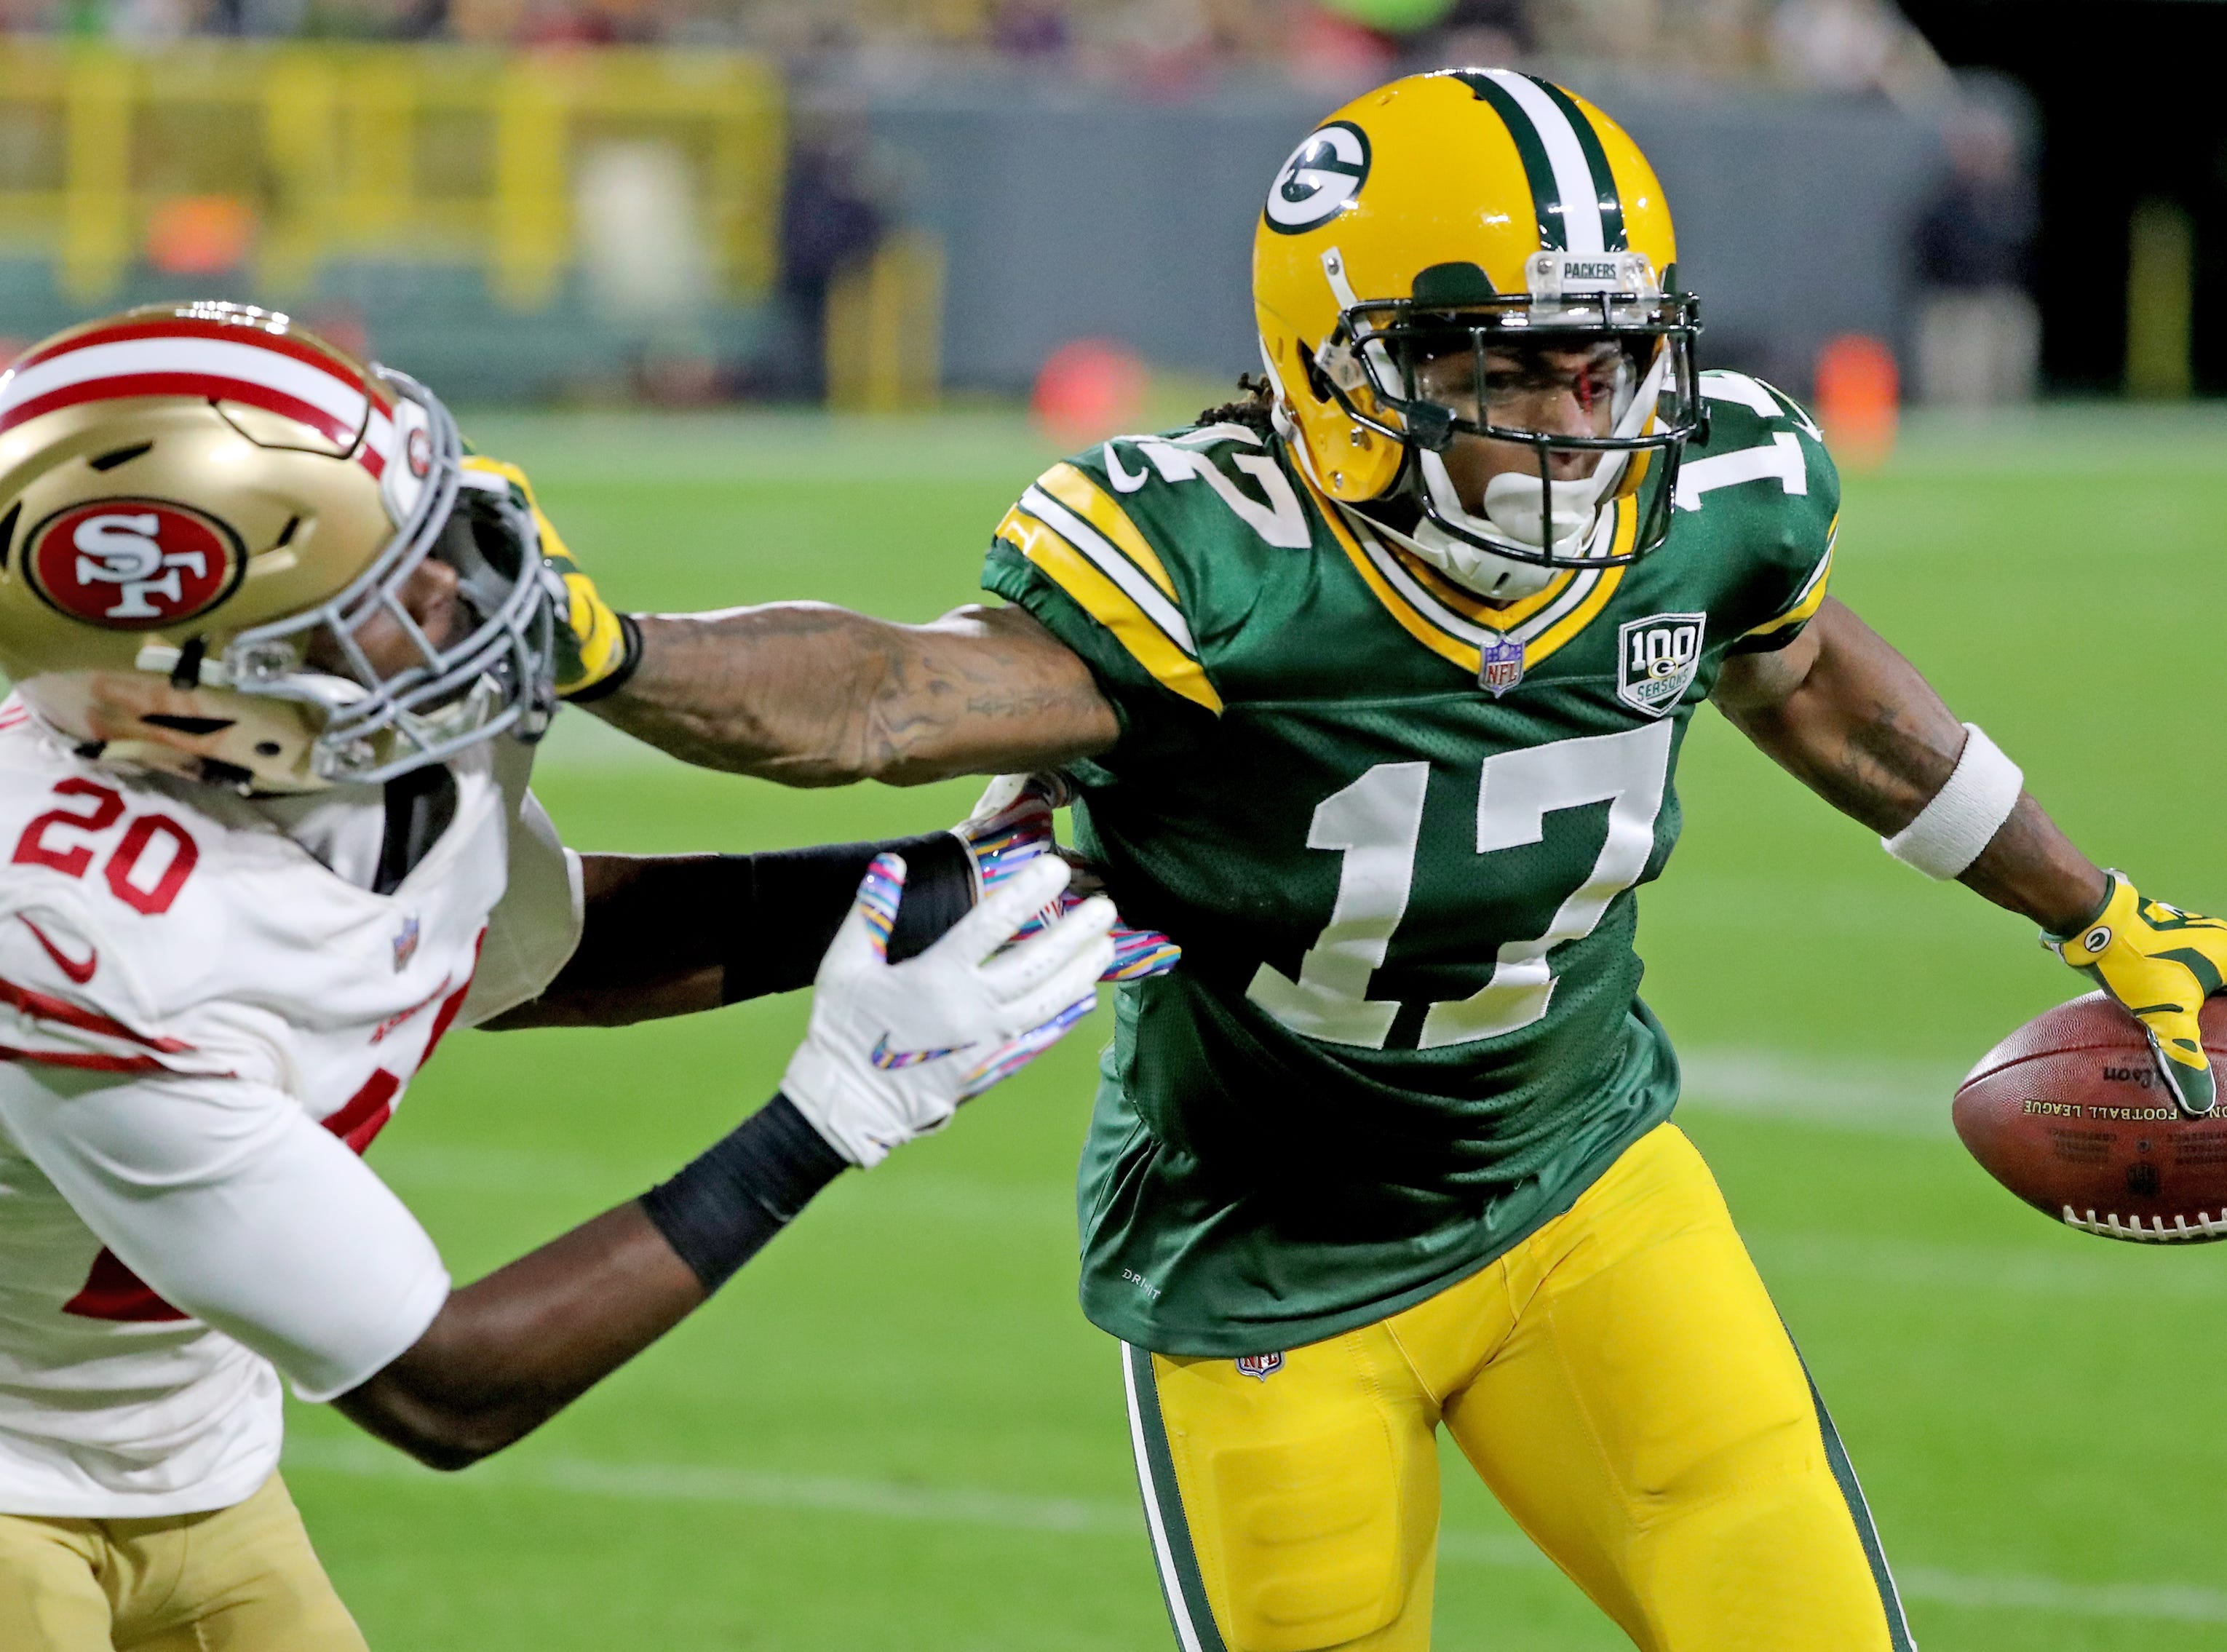 Green Bay Packers wide receiver Davante Adams (17) stiff arms cornerback Jimmie Ward (20) against the San Francisco 49ers at Lambeau Field Monday, October 15, 2018 in Green Bay, Wis.